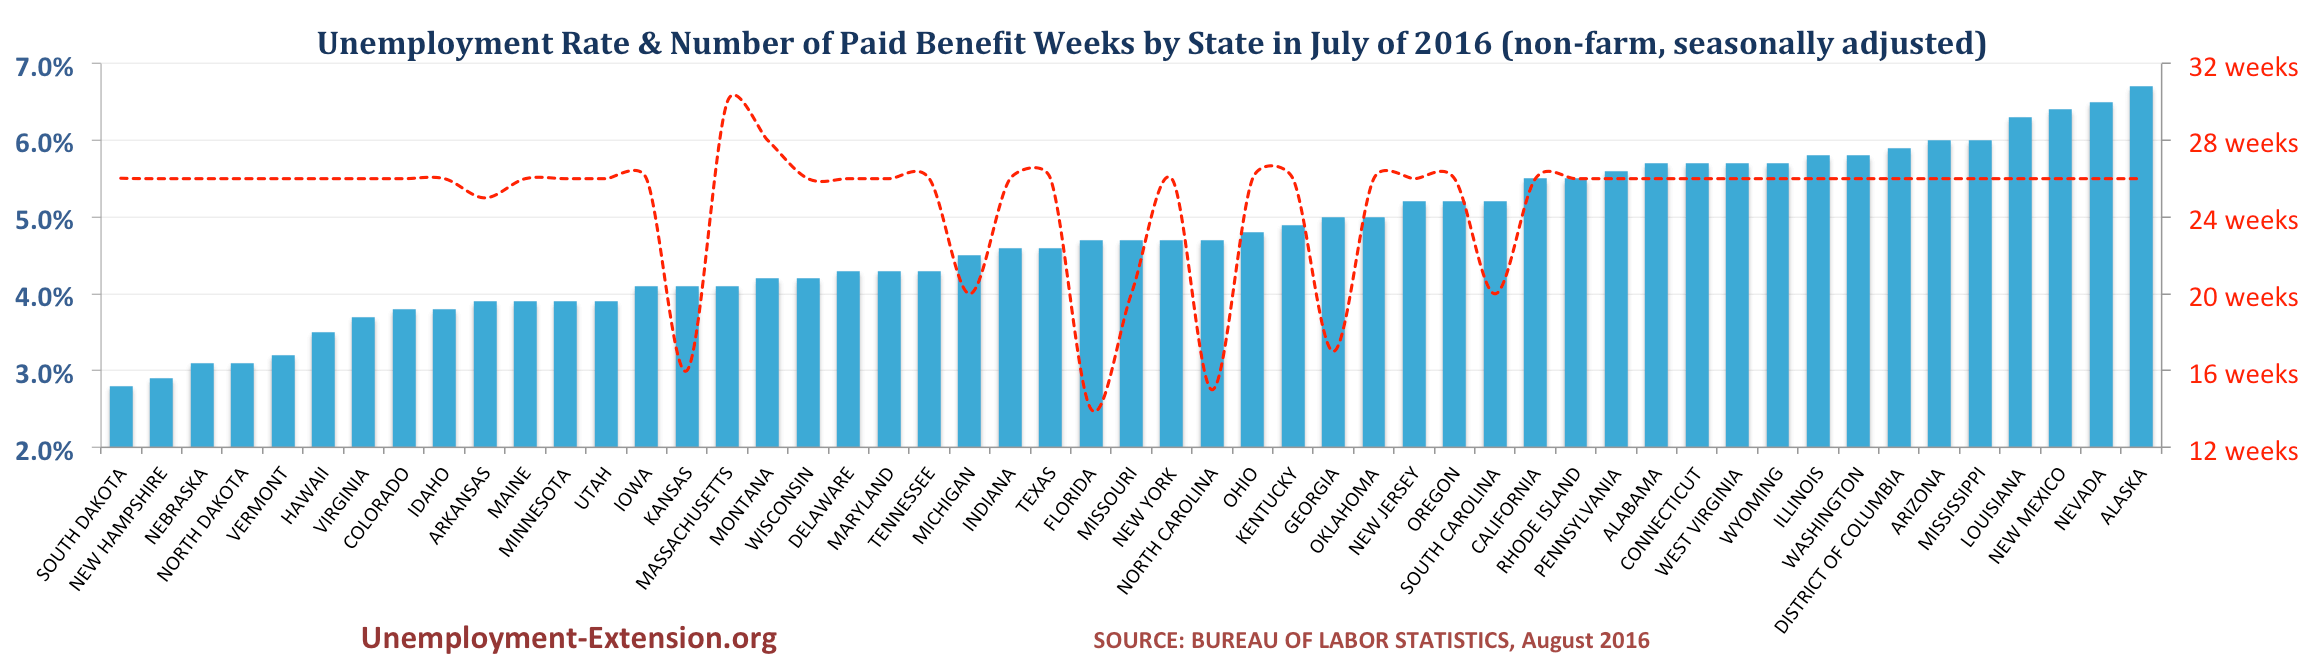 Unemployment Rate and Number of Paid Unemployment Benefit weeks by State (non-farm, seasonally adjusted) in July of 2016